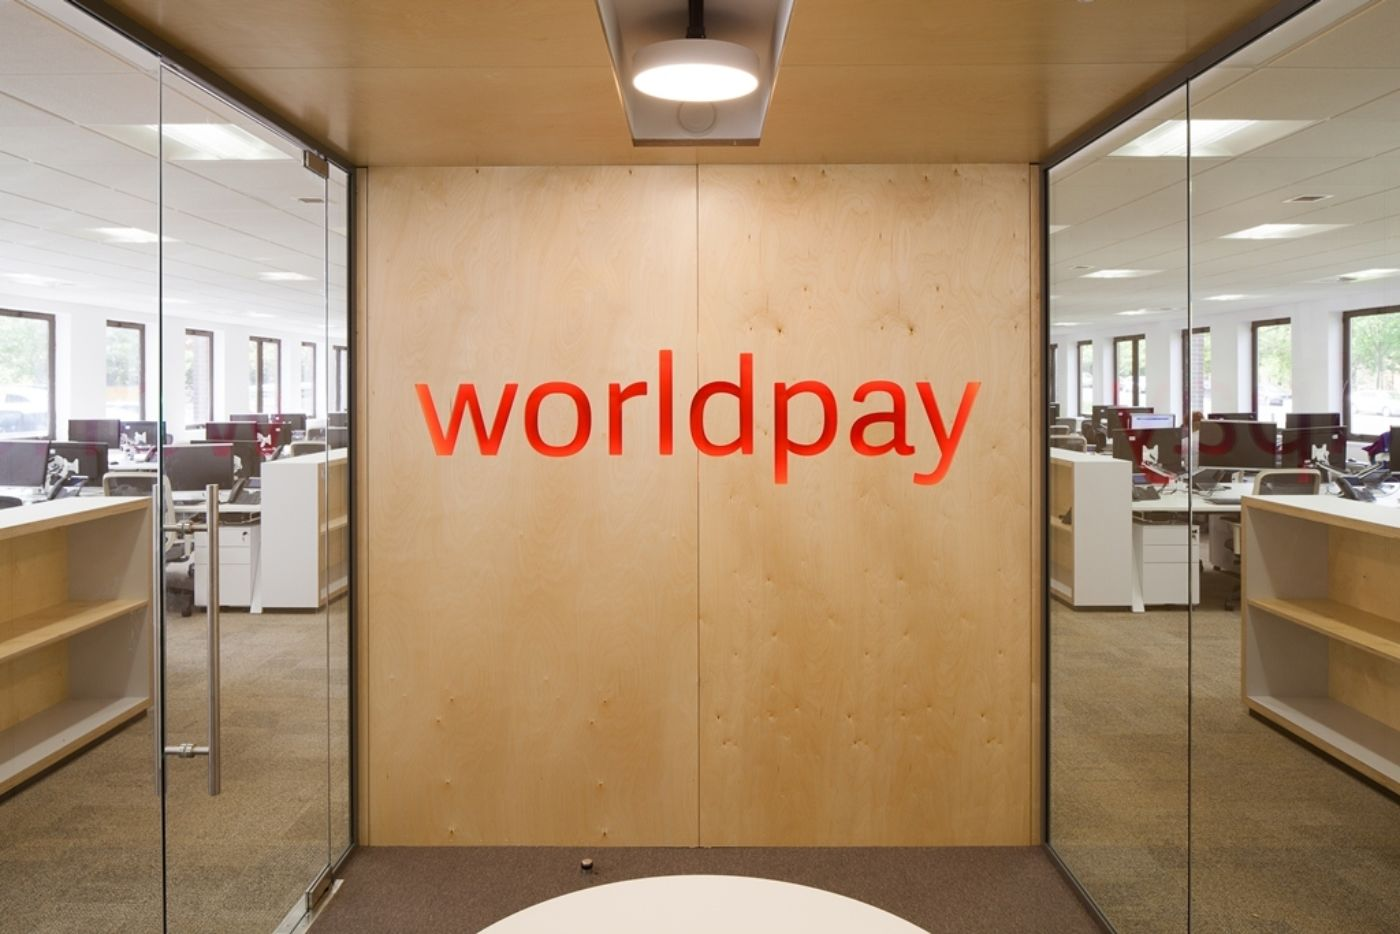 Large Worldpay logo in reception